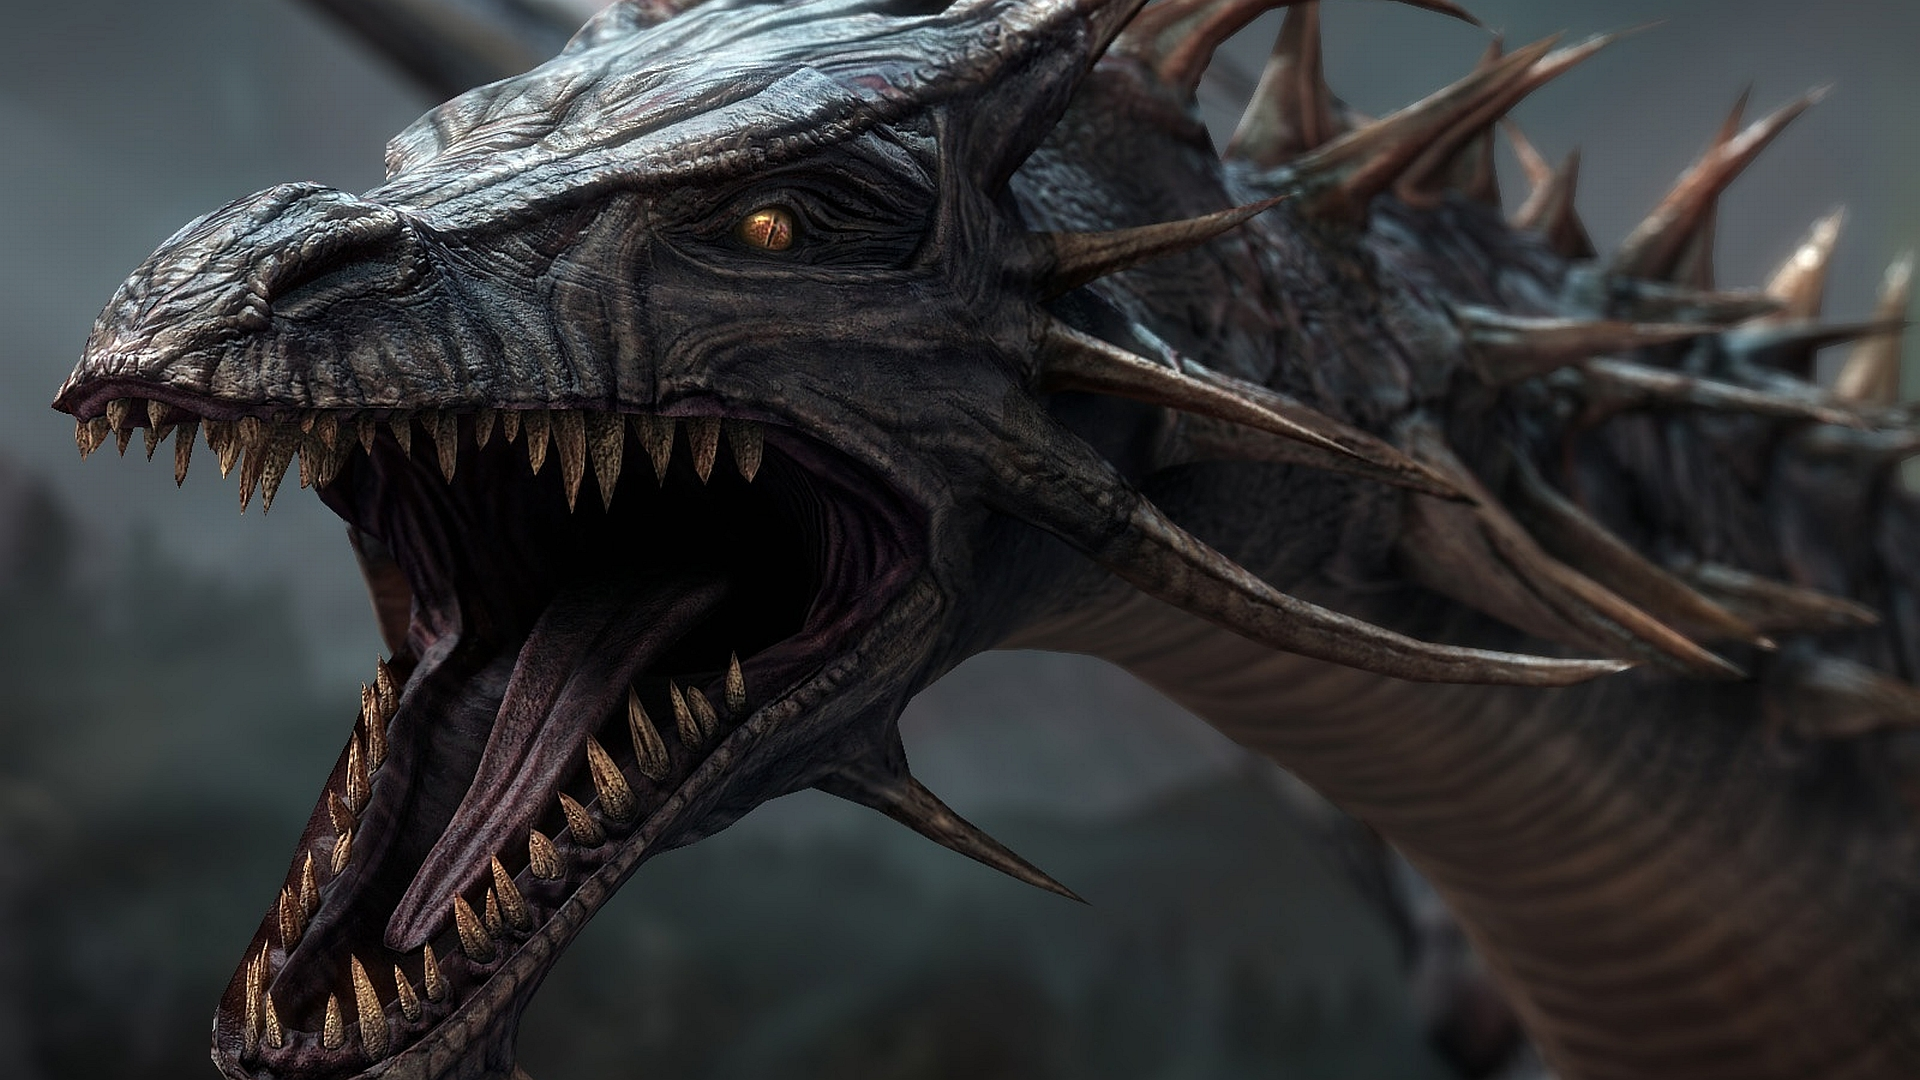 dragon wallpapers high quality download free